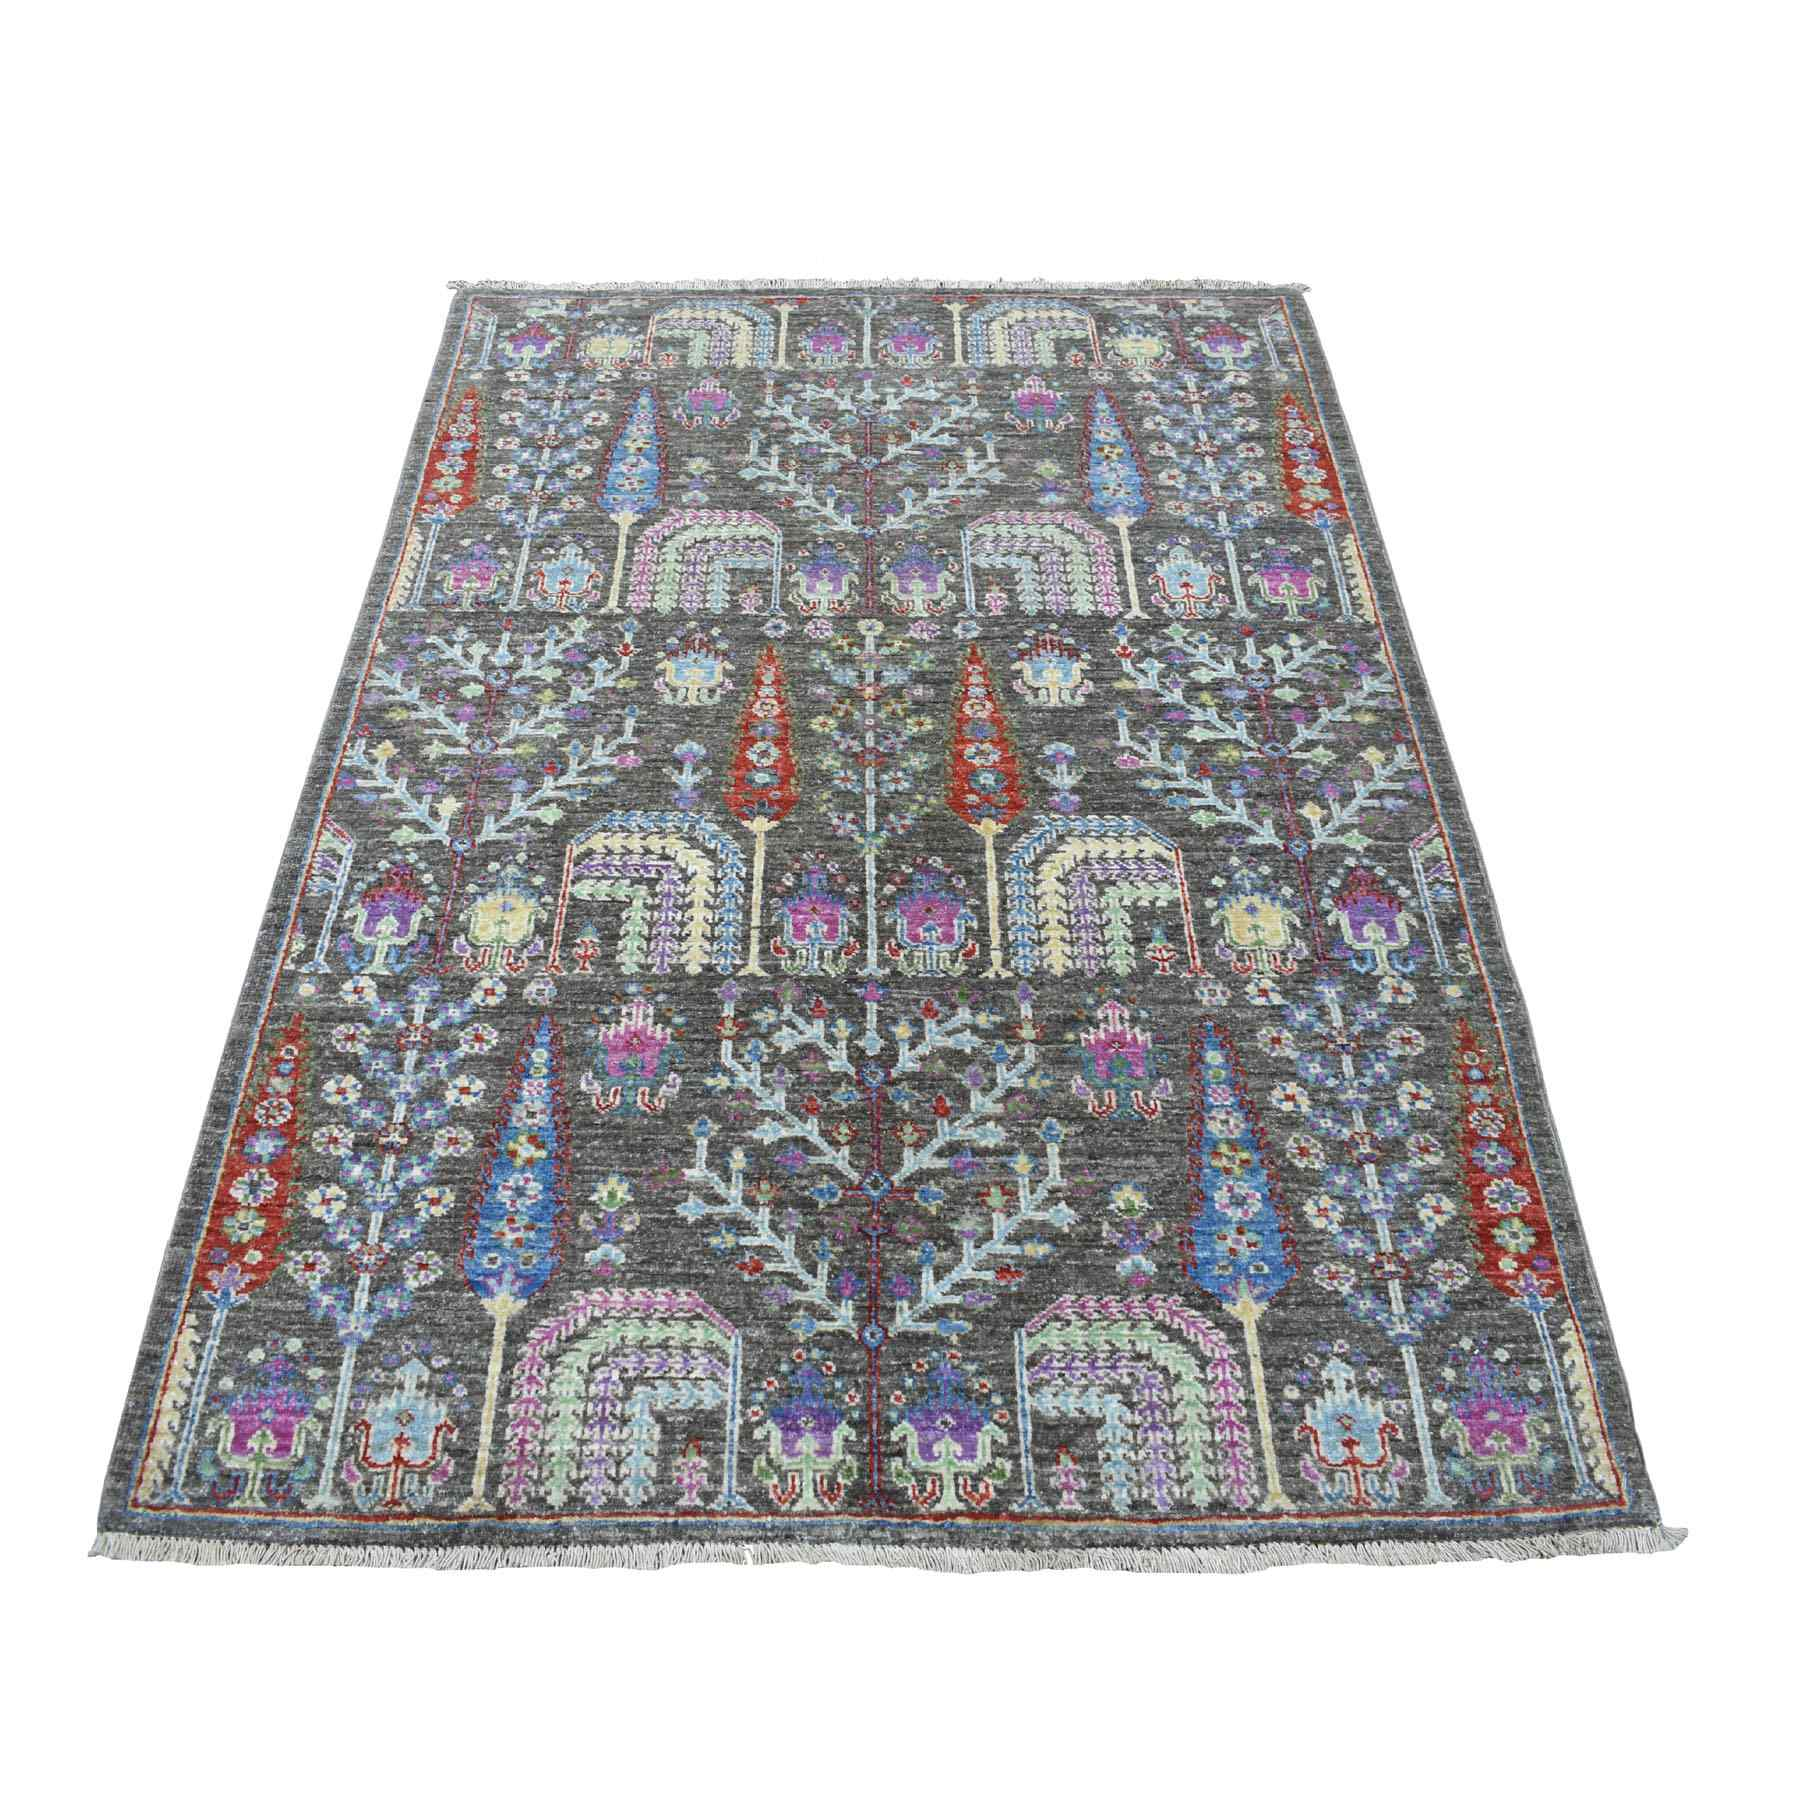 4'x6' Gray With Pop Of Color Willow And Cypress Tree Design Hand Woven Oriental Rug